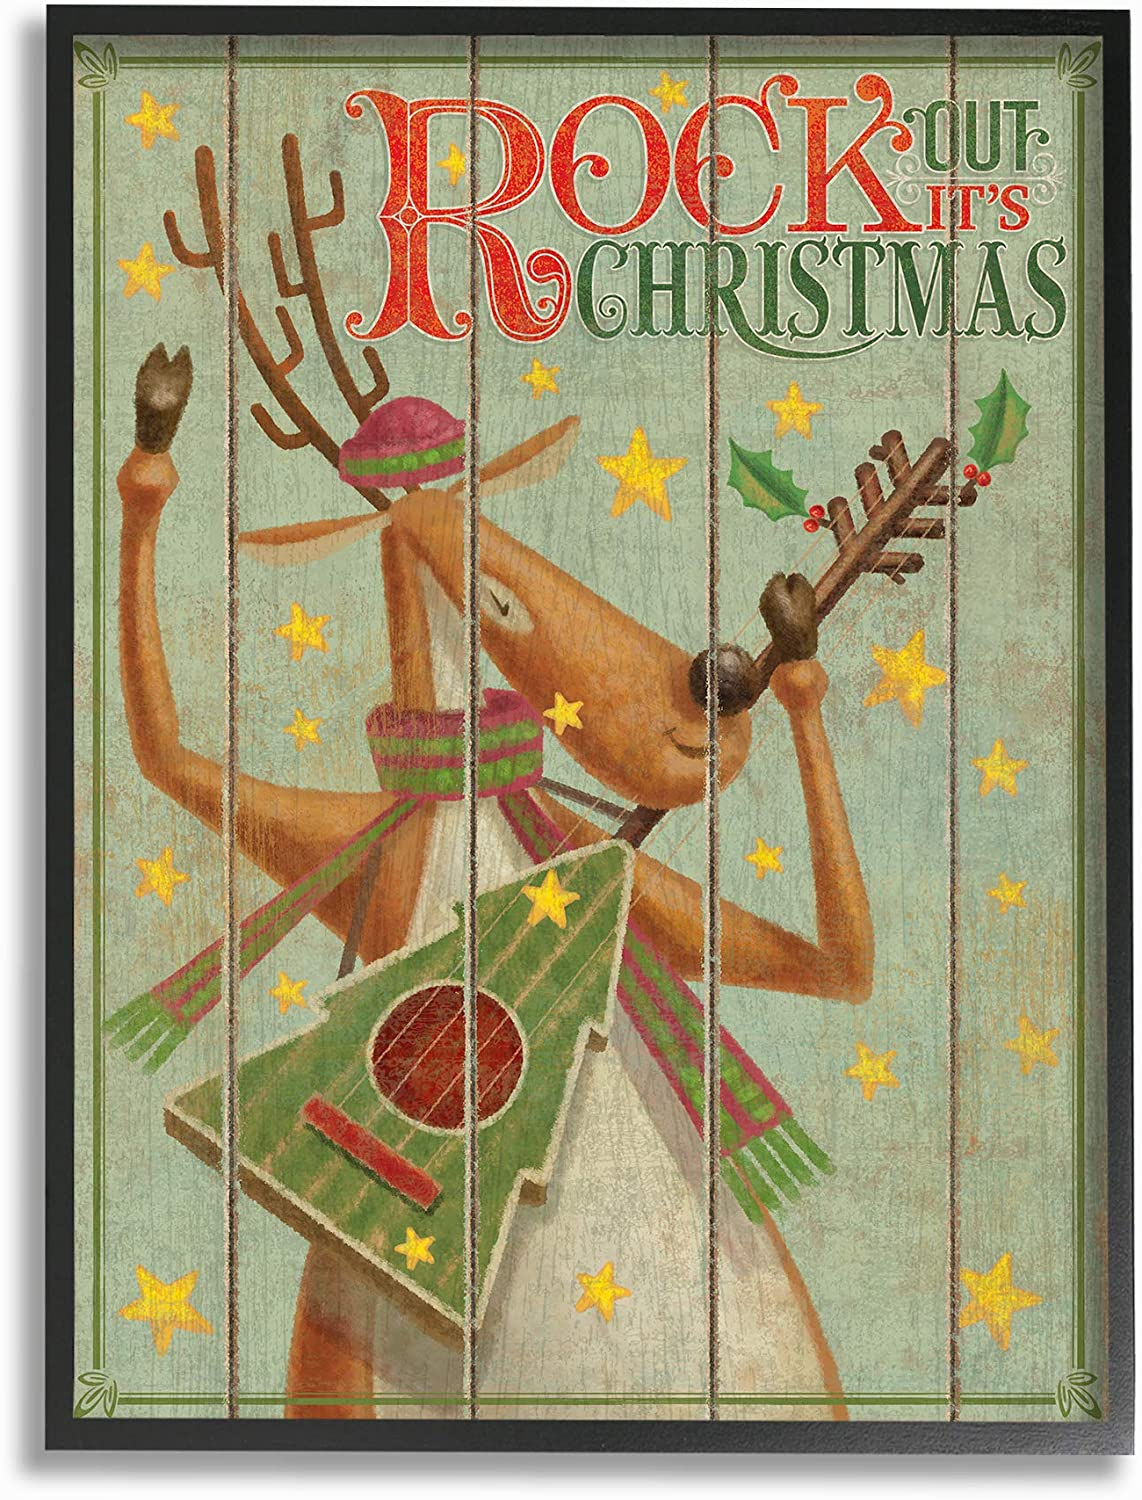 Stupell Industries Home Holiday Vintage Planked Look Music Rock Out Its Christmas Reindeer Framed Giclee Texturized Art, Multi-color